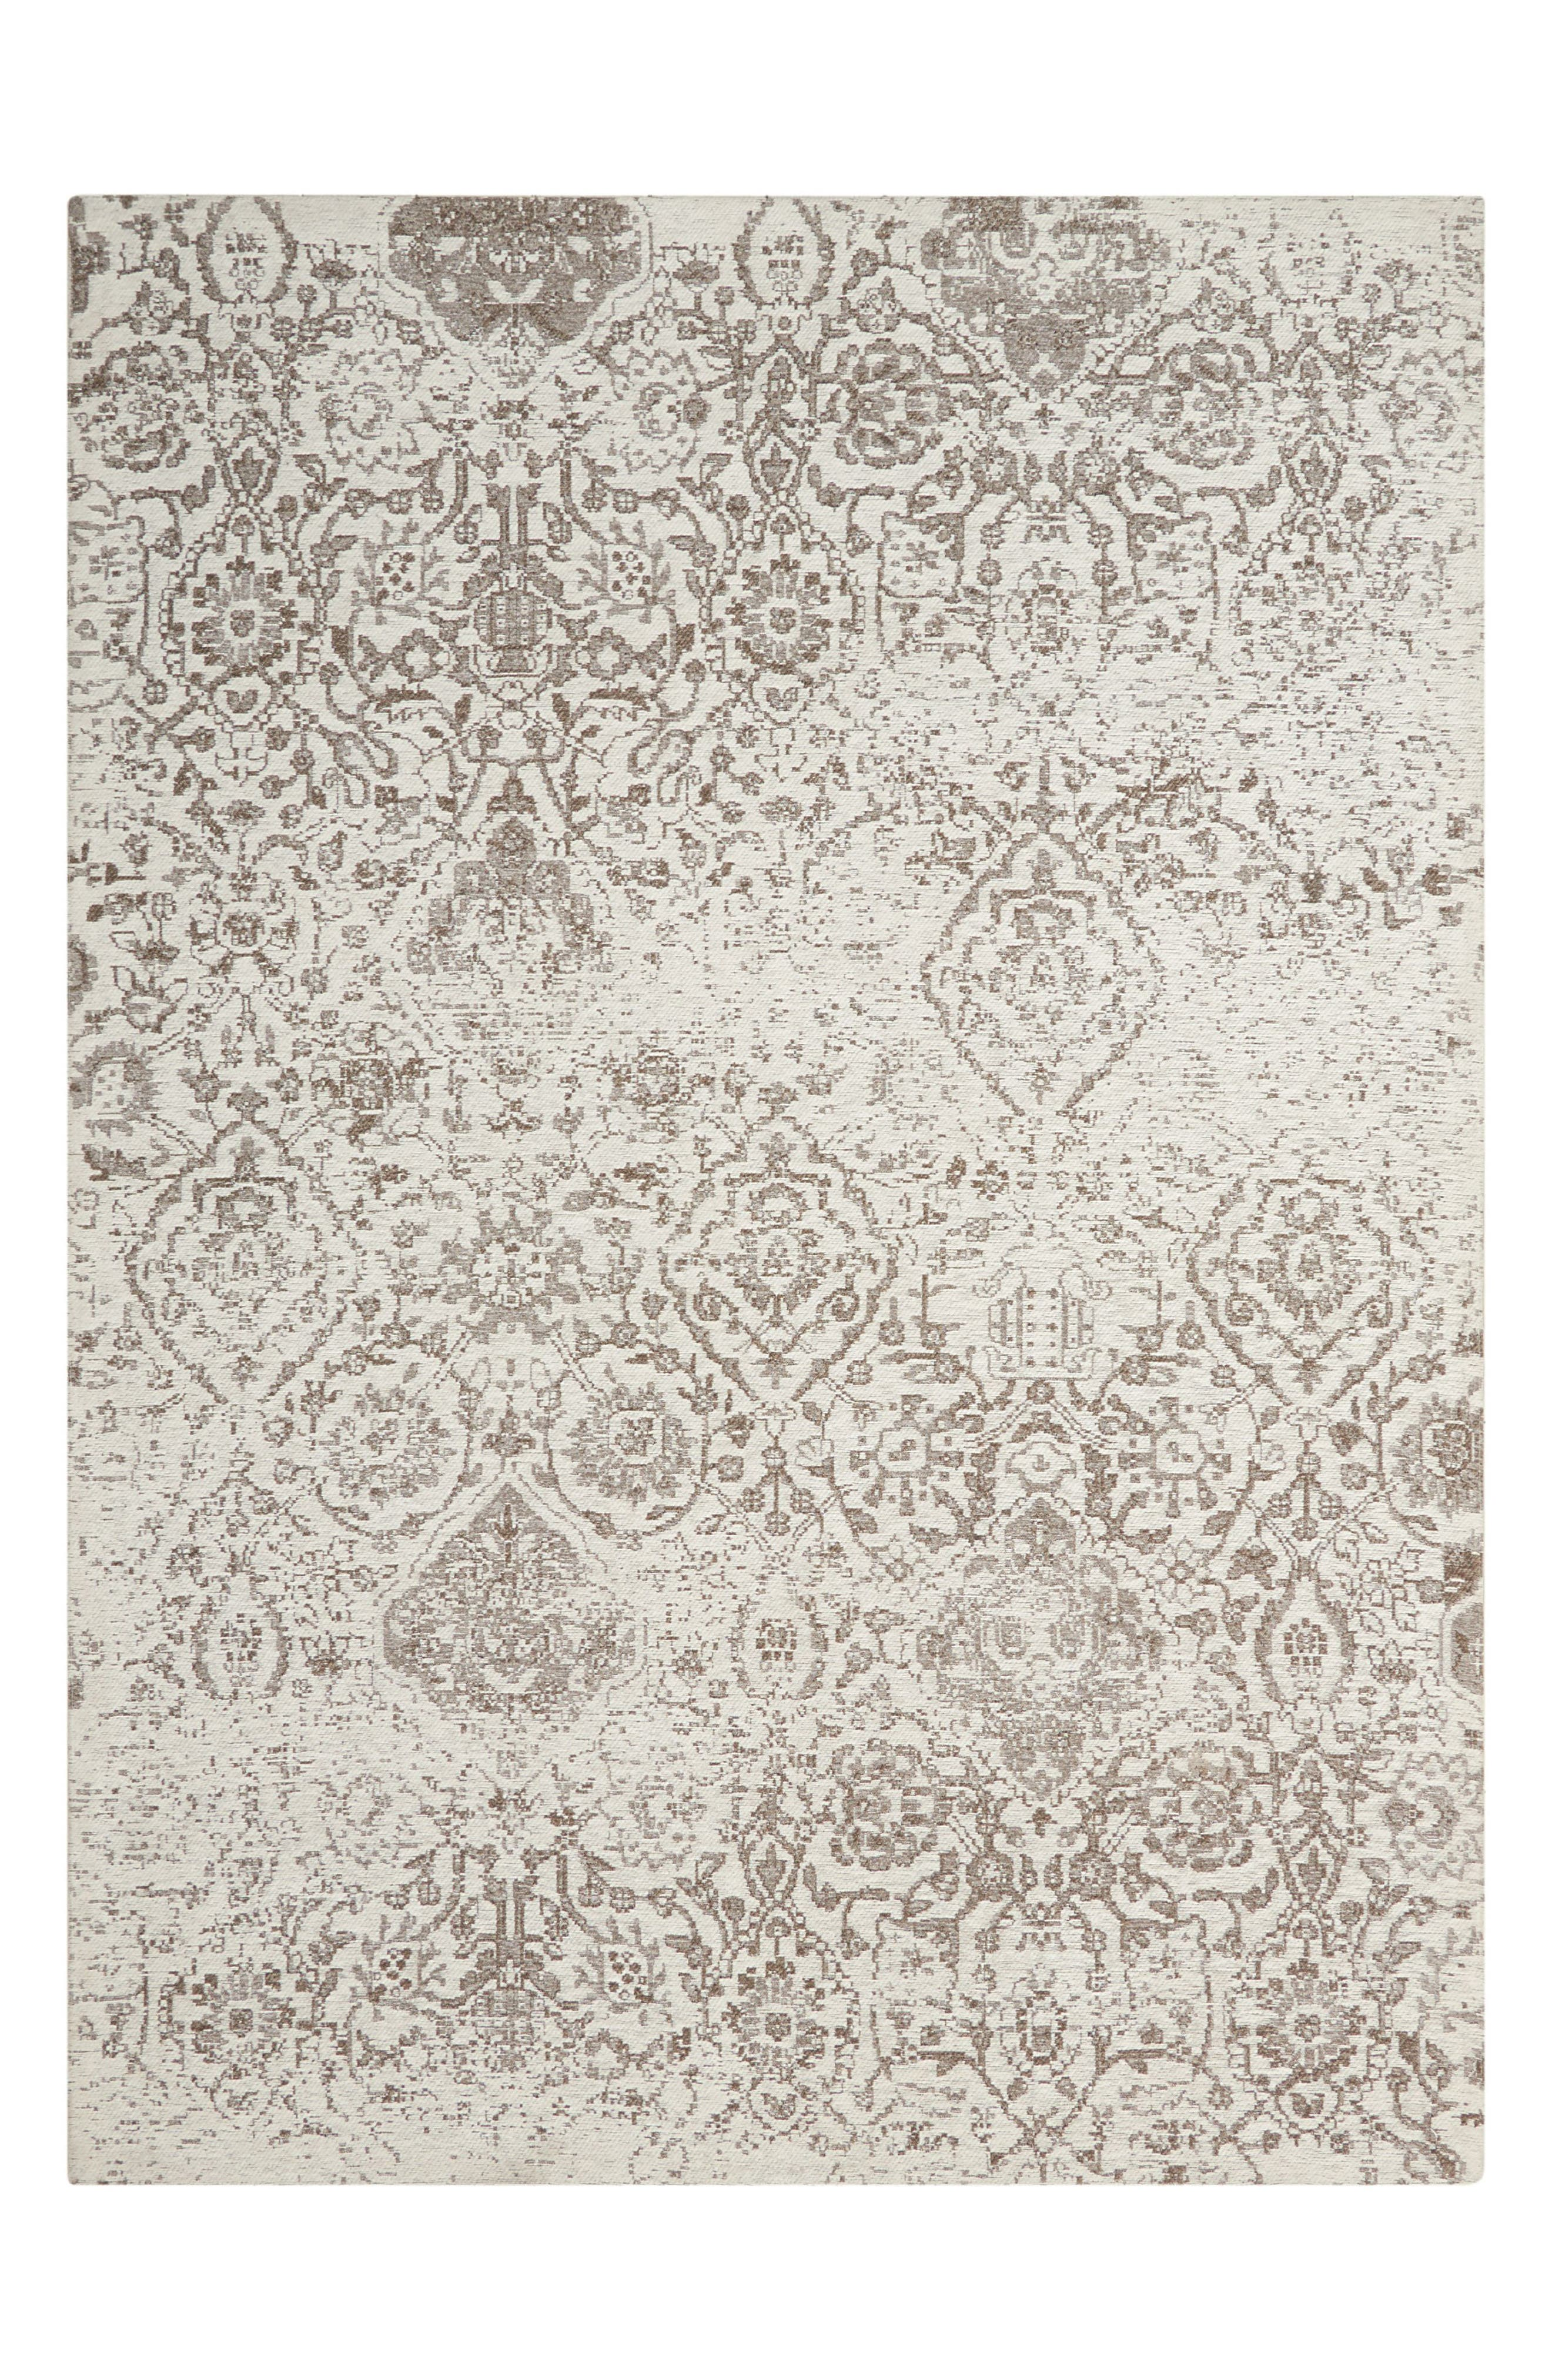 Damask Rug,                         Main,                         color, 020